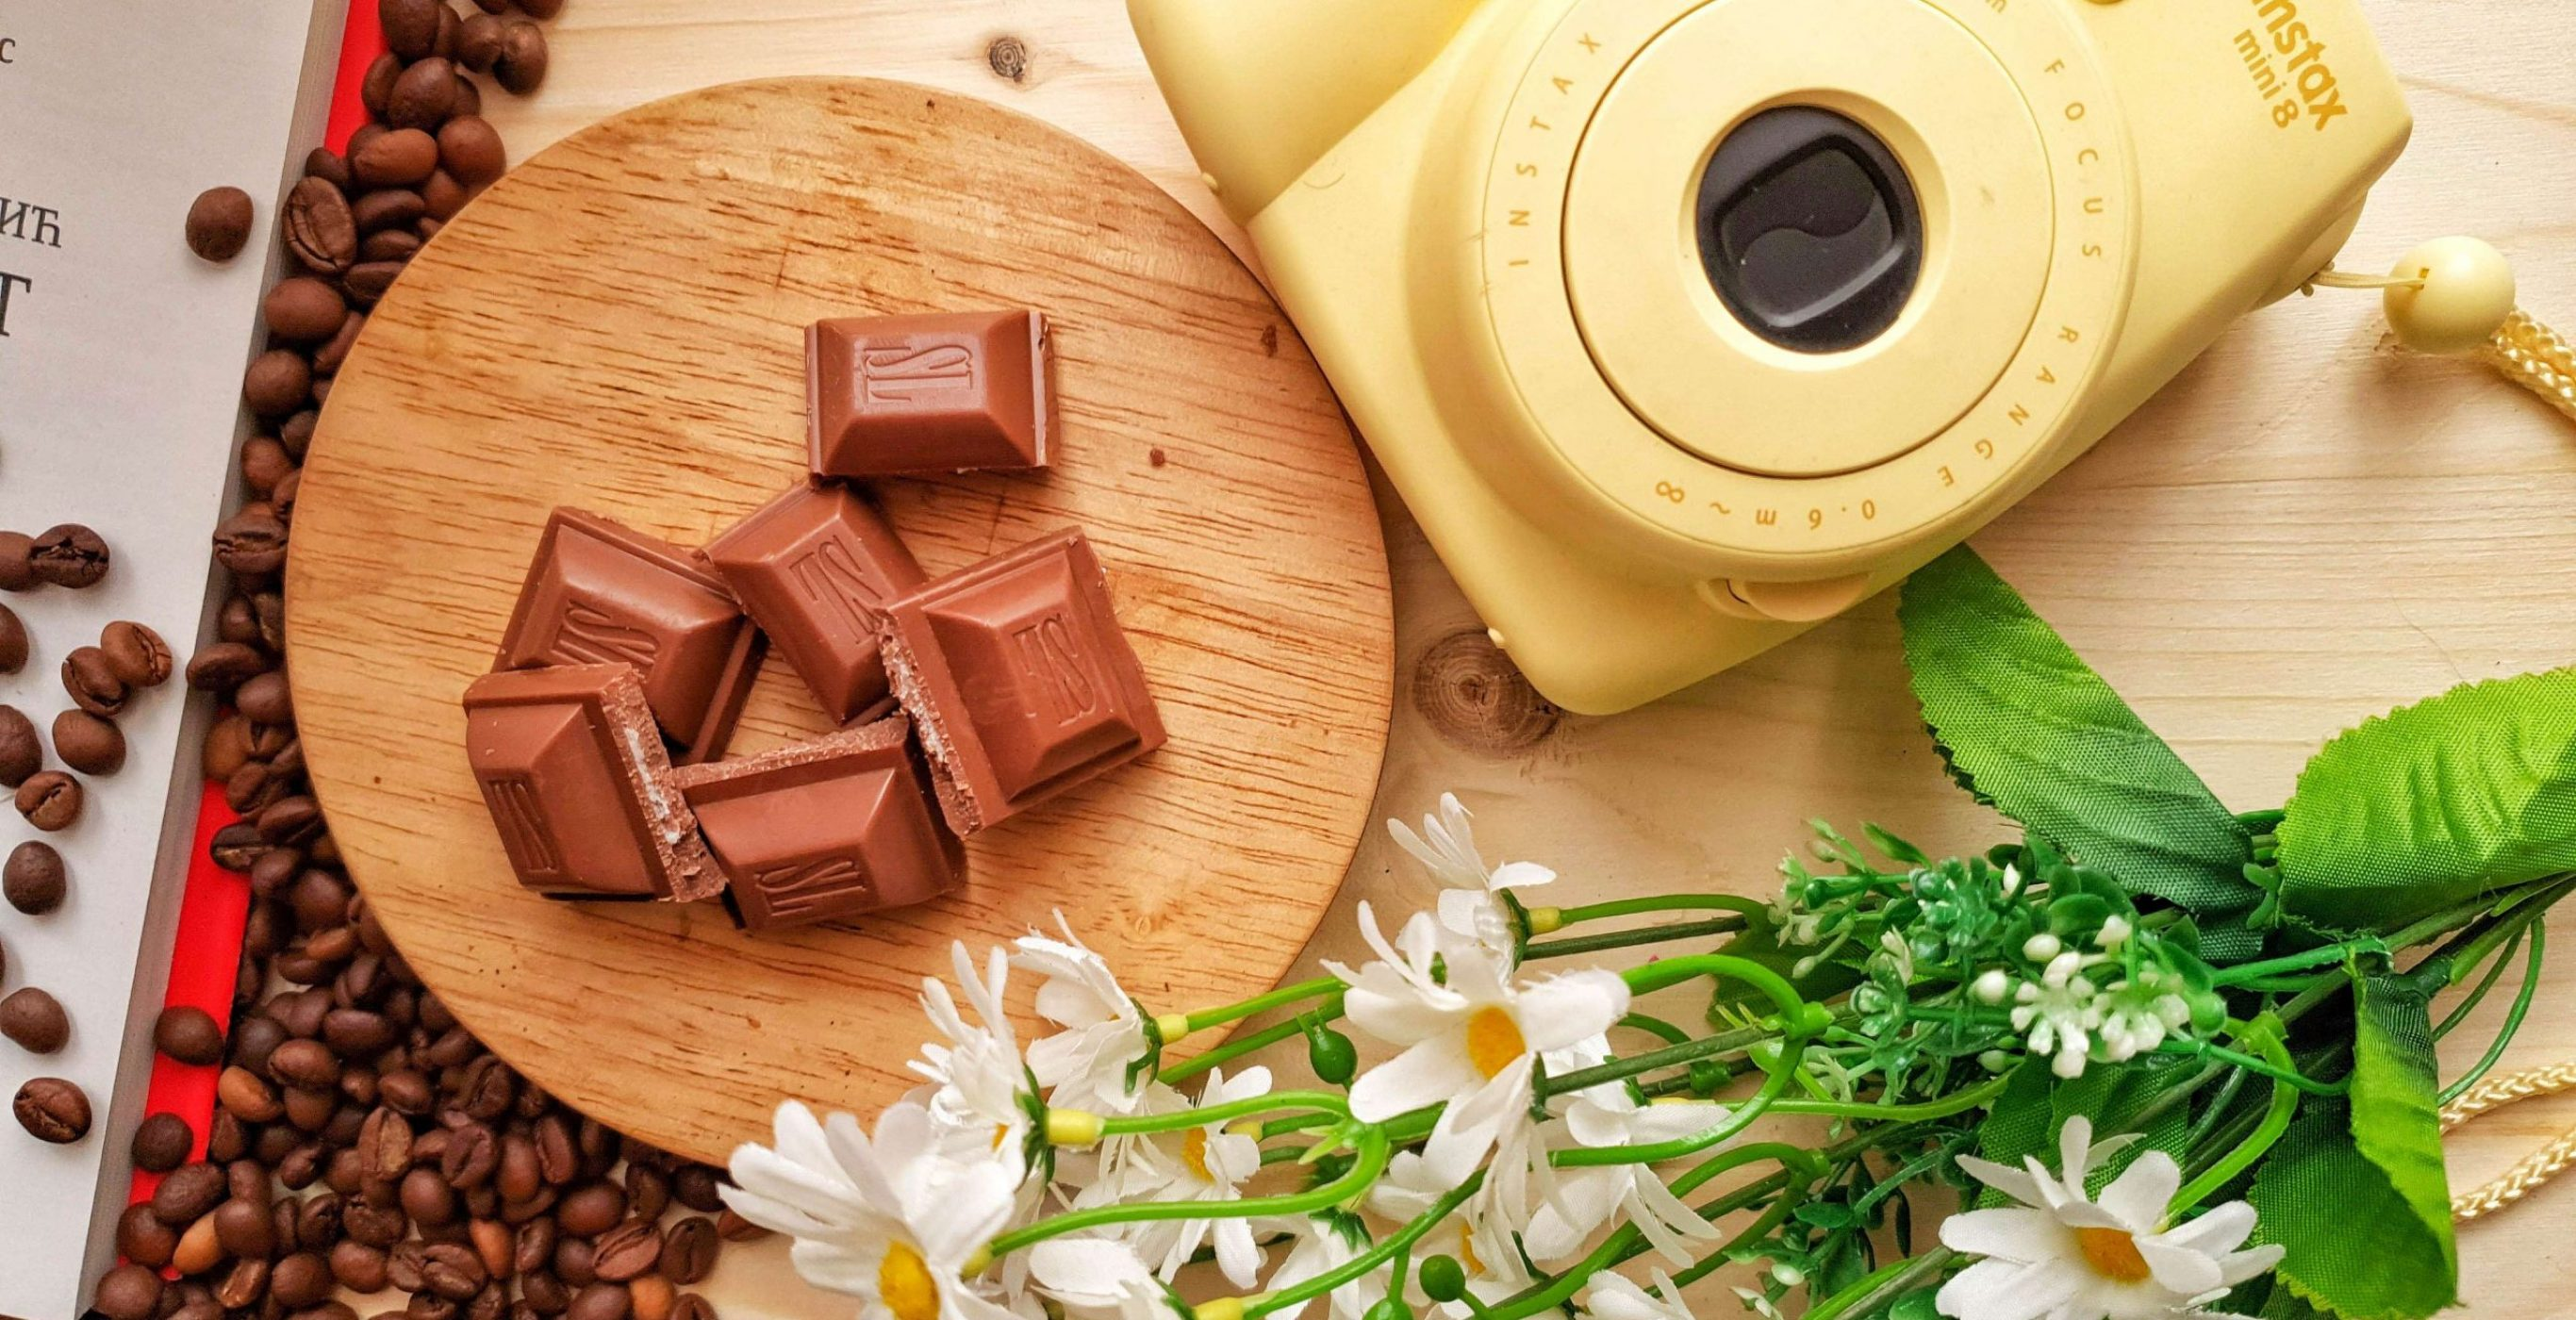 An image of a camera, flowers, chocolates, and other assorted things on top of a brown surface, used as the featured image for the article